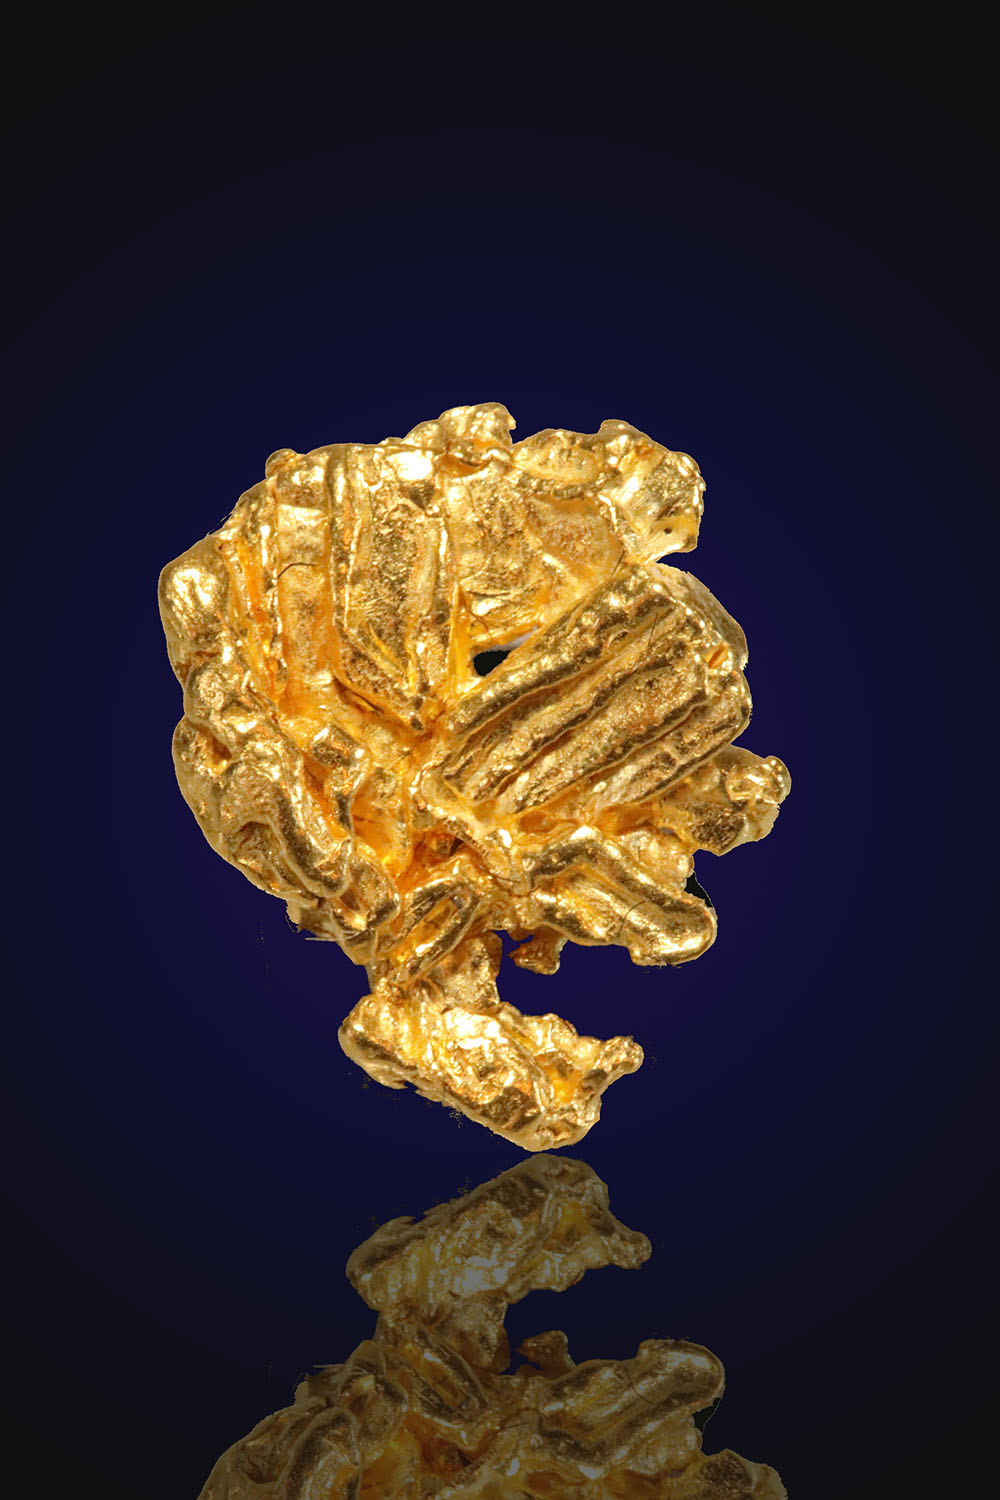 Striated Cloverleaf Shaped Gold Nugget from Alaska